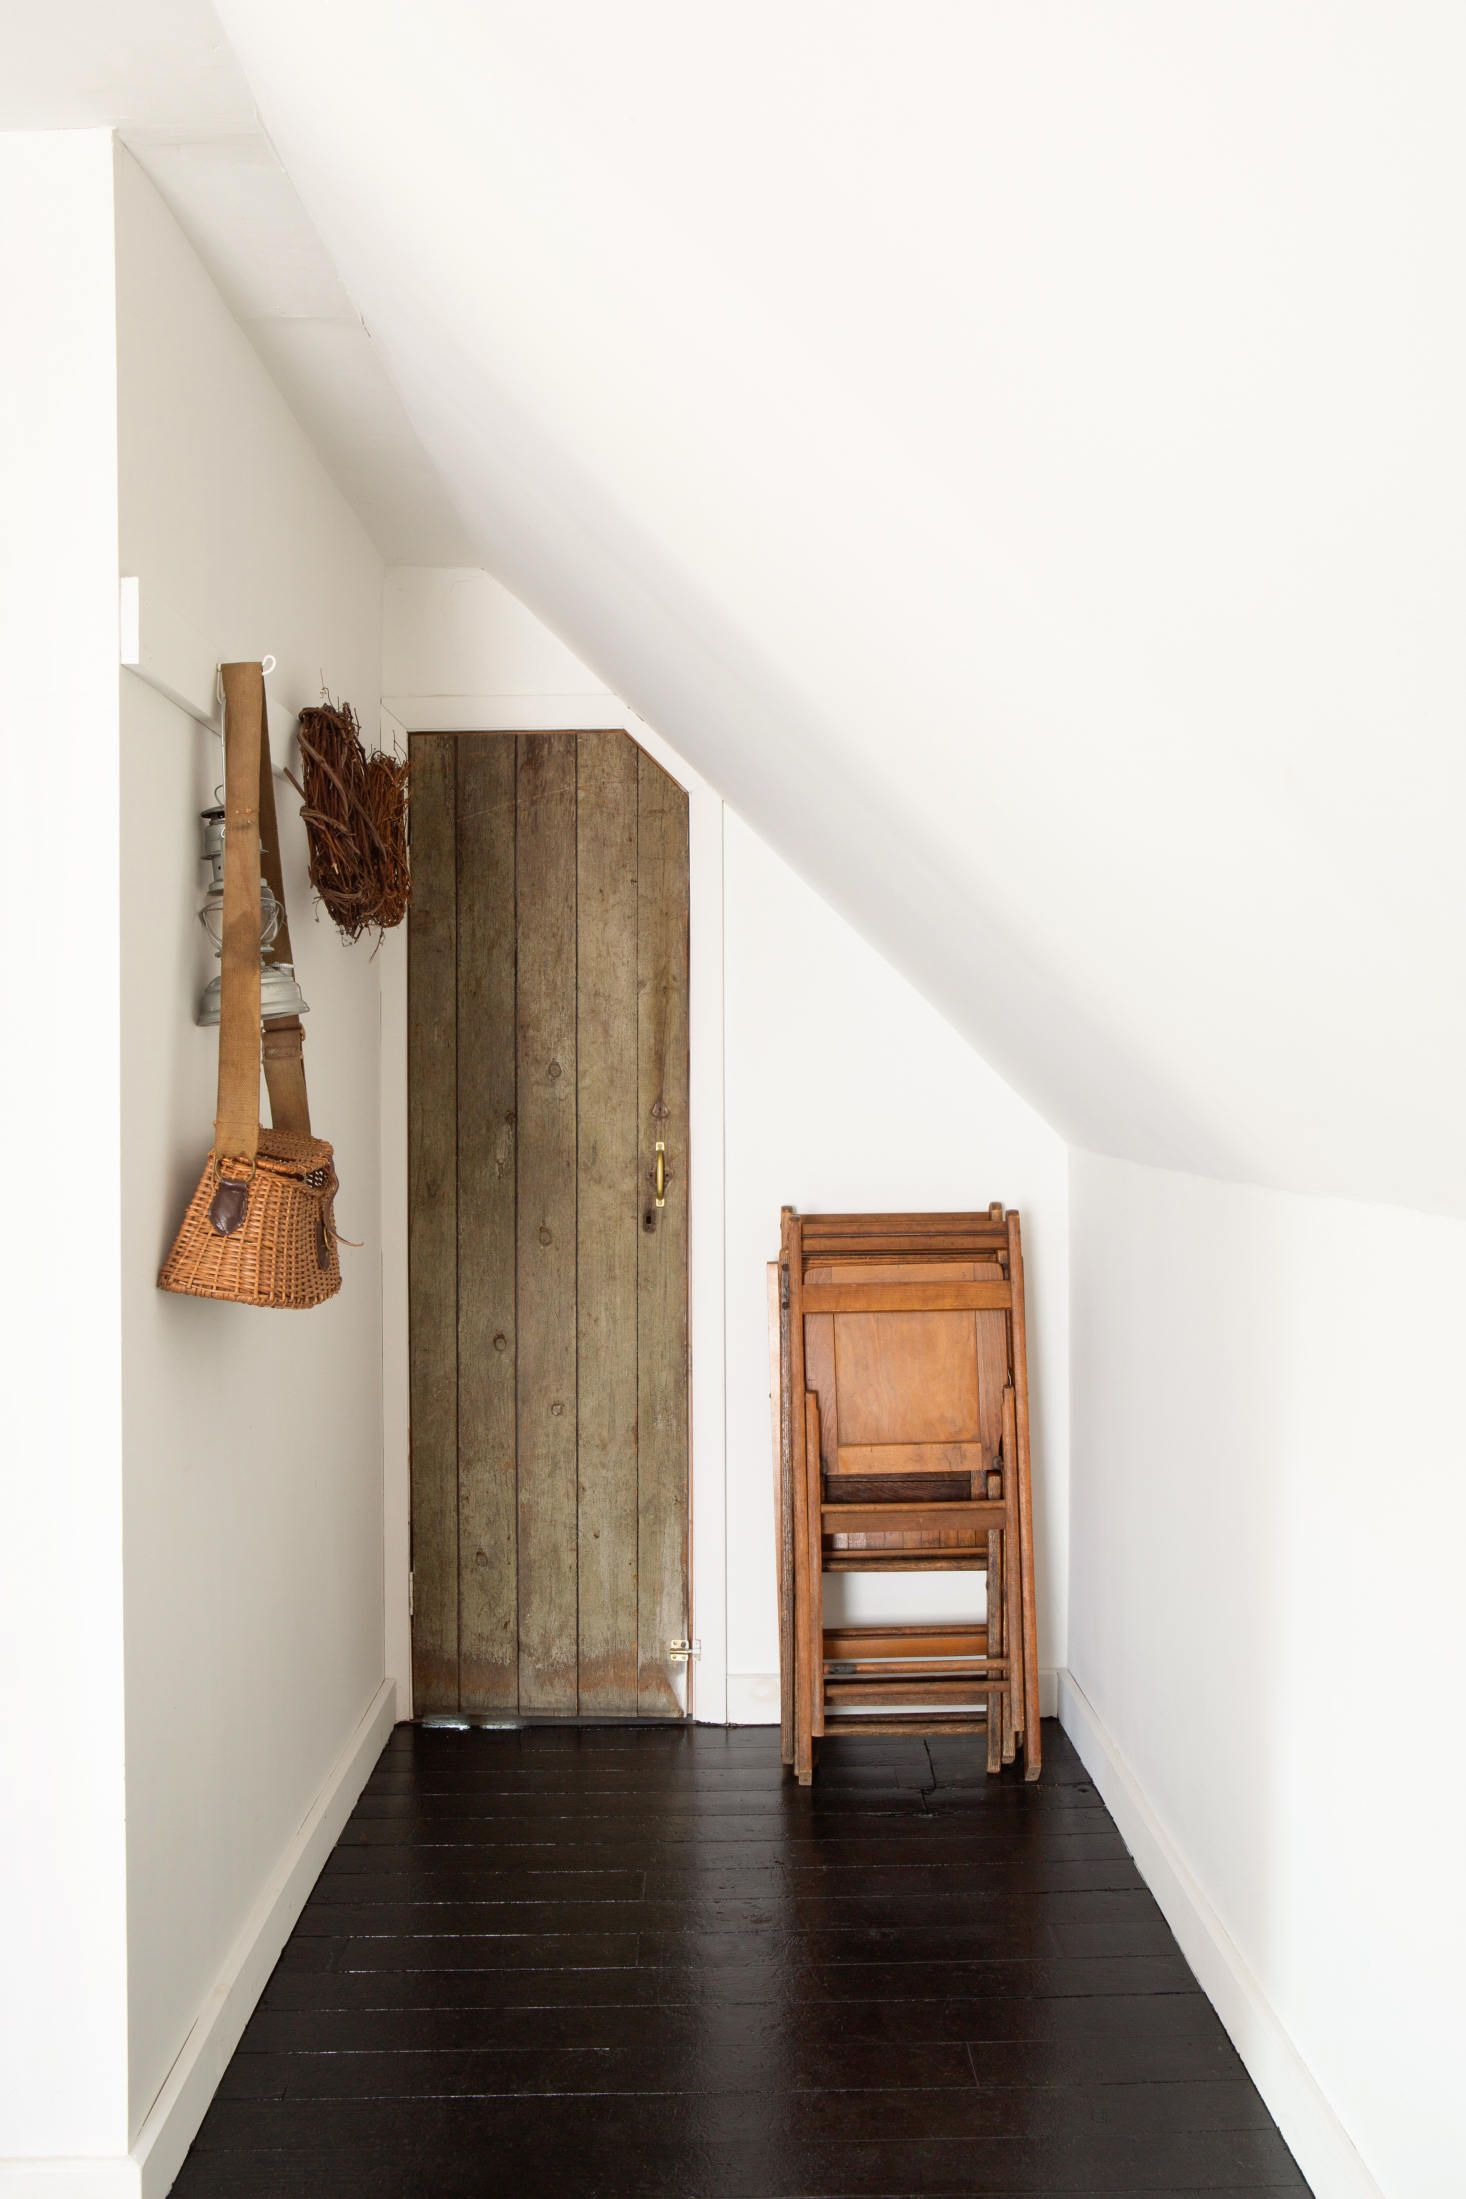 Before & After An Airy Summer Bedroom in a Catskills